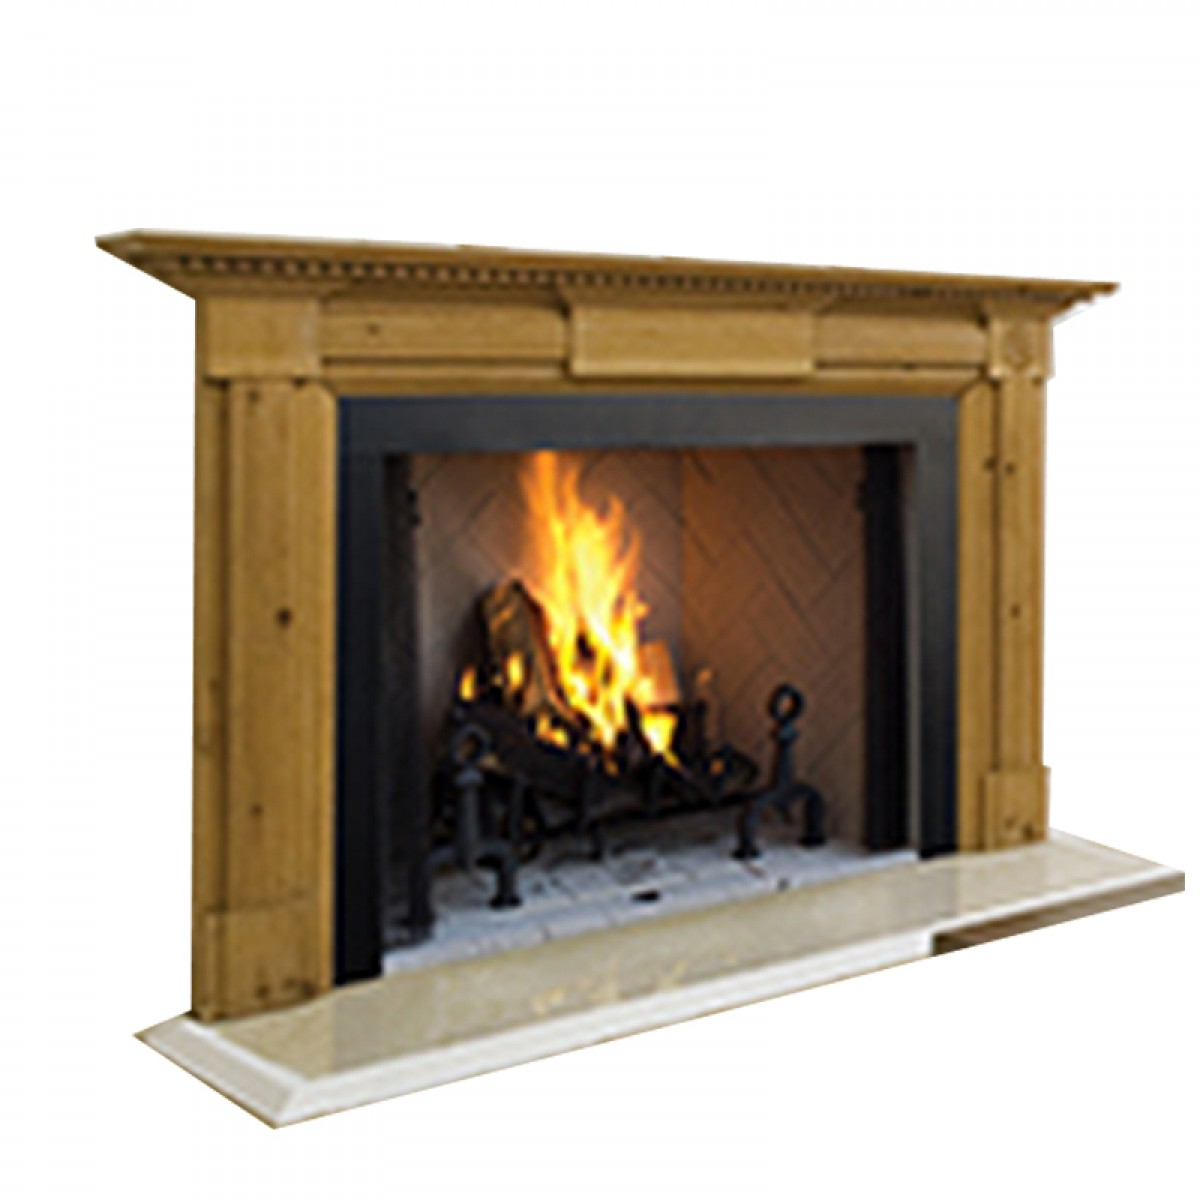 Ihp Superior Wrt4550wh 50 Quot Wood Fireplace Panels